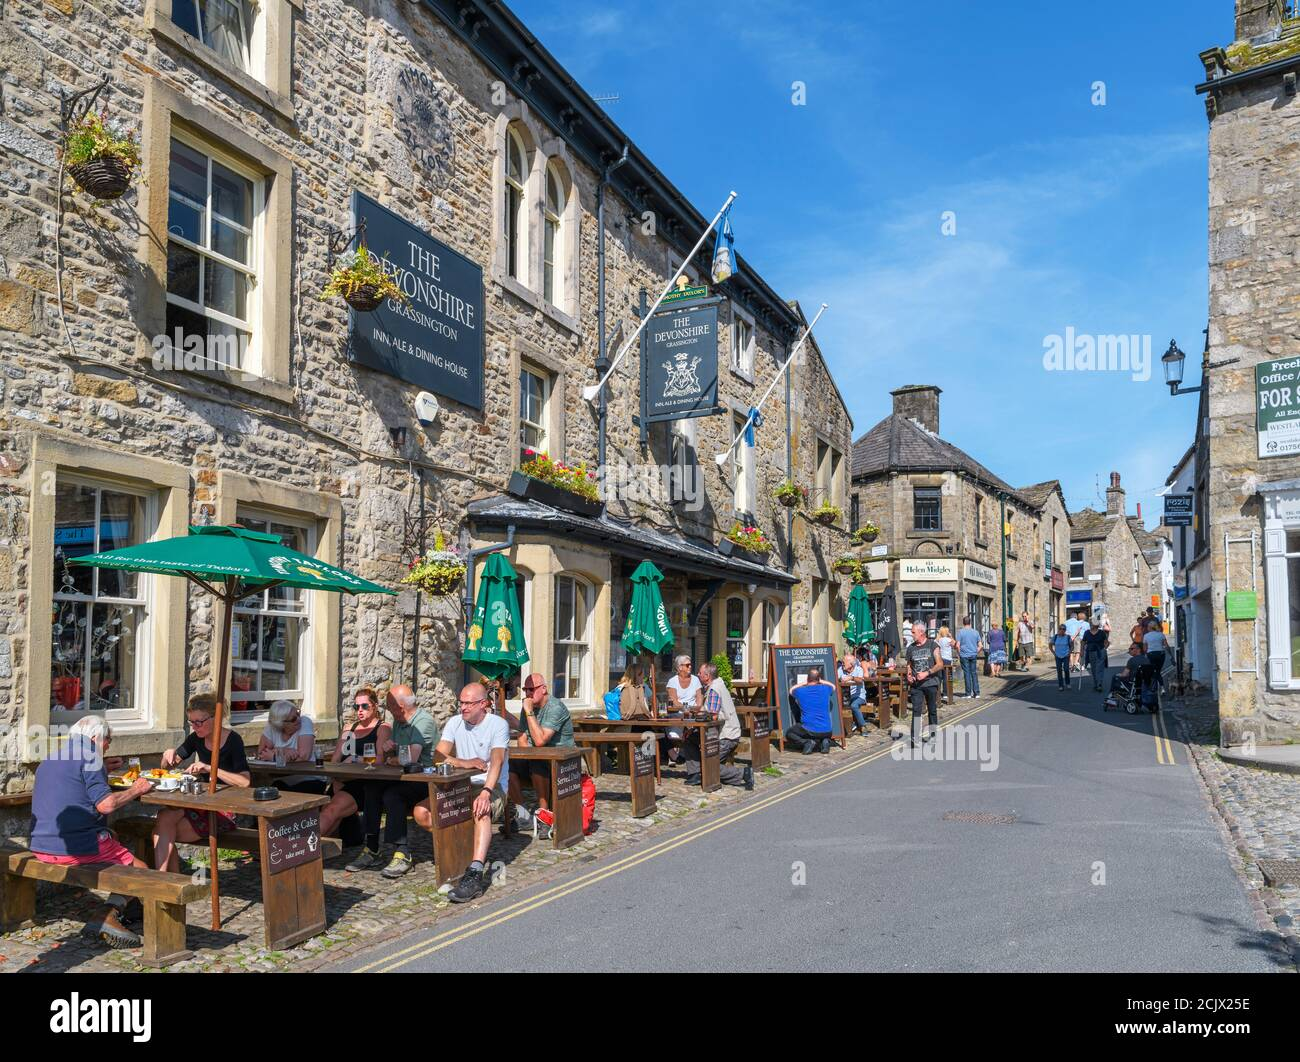 The Devonshire Inn on the Main Street in the traditional English village of Grassington, Yorkshire Dales National Park, North Yorkshire, England, UK. Stock Photo